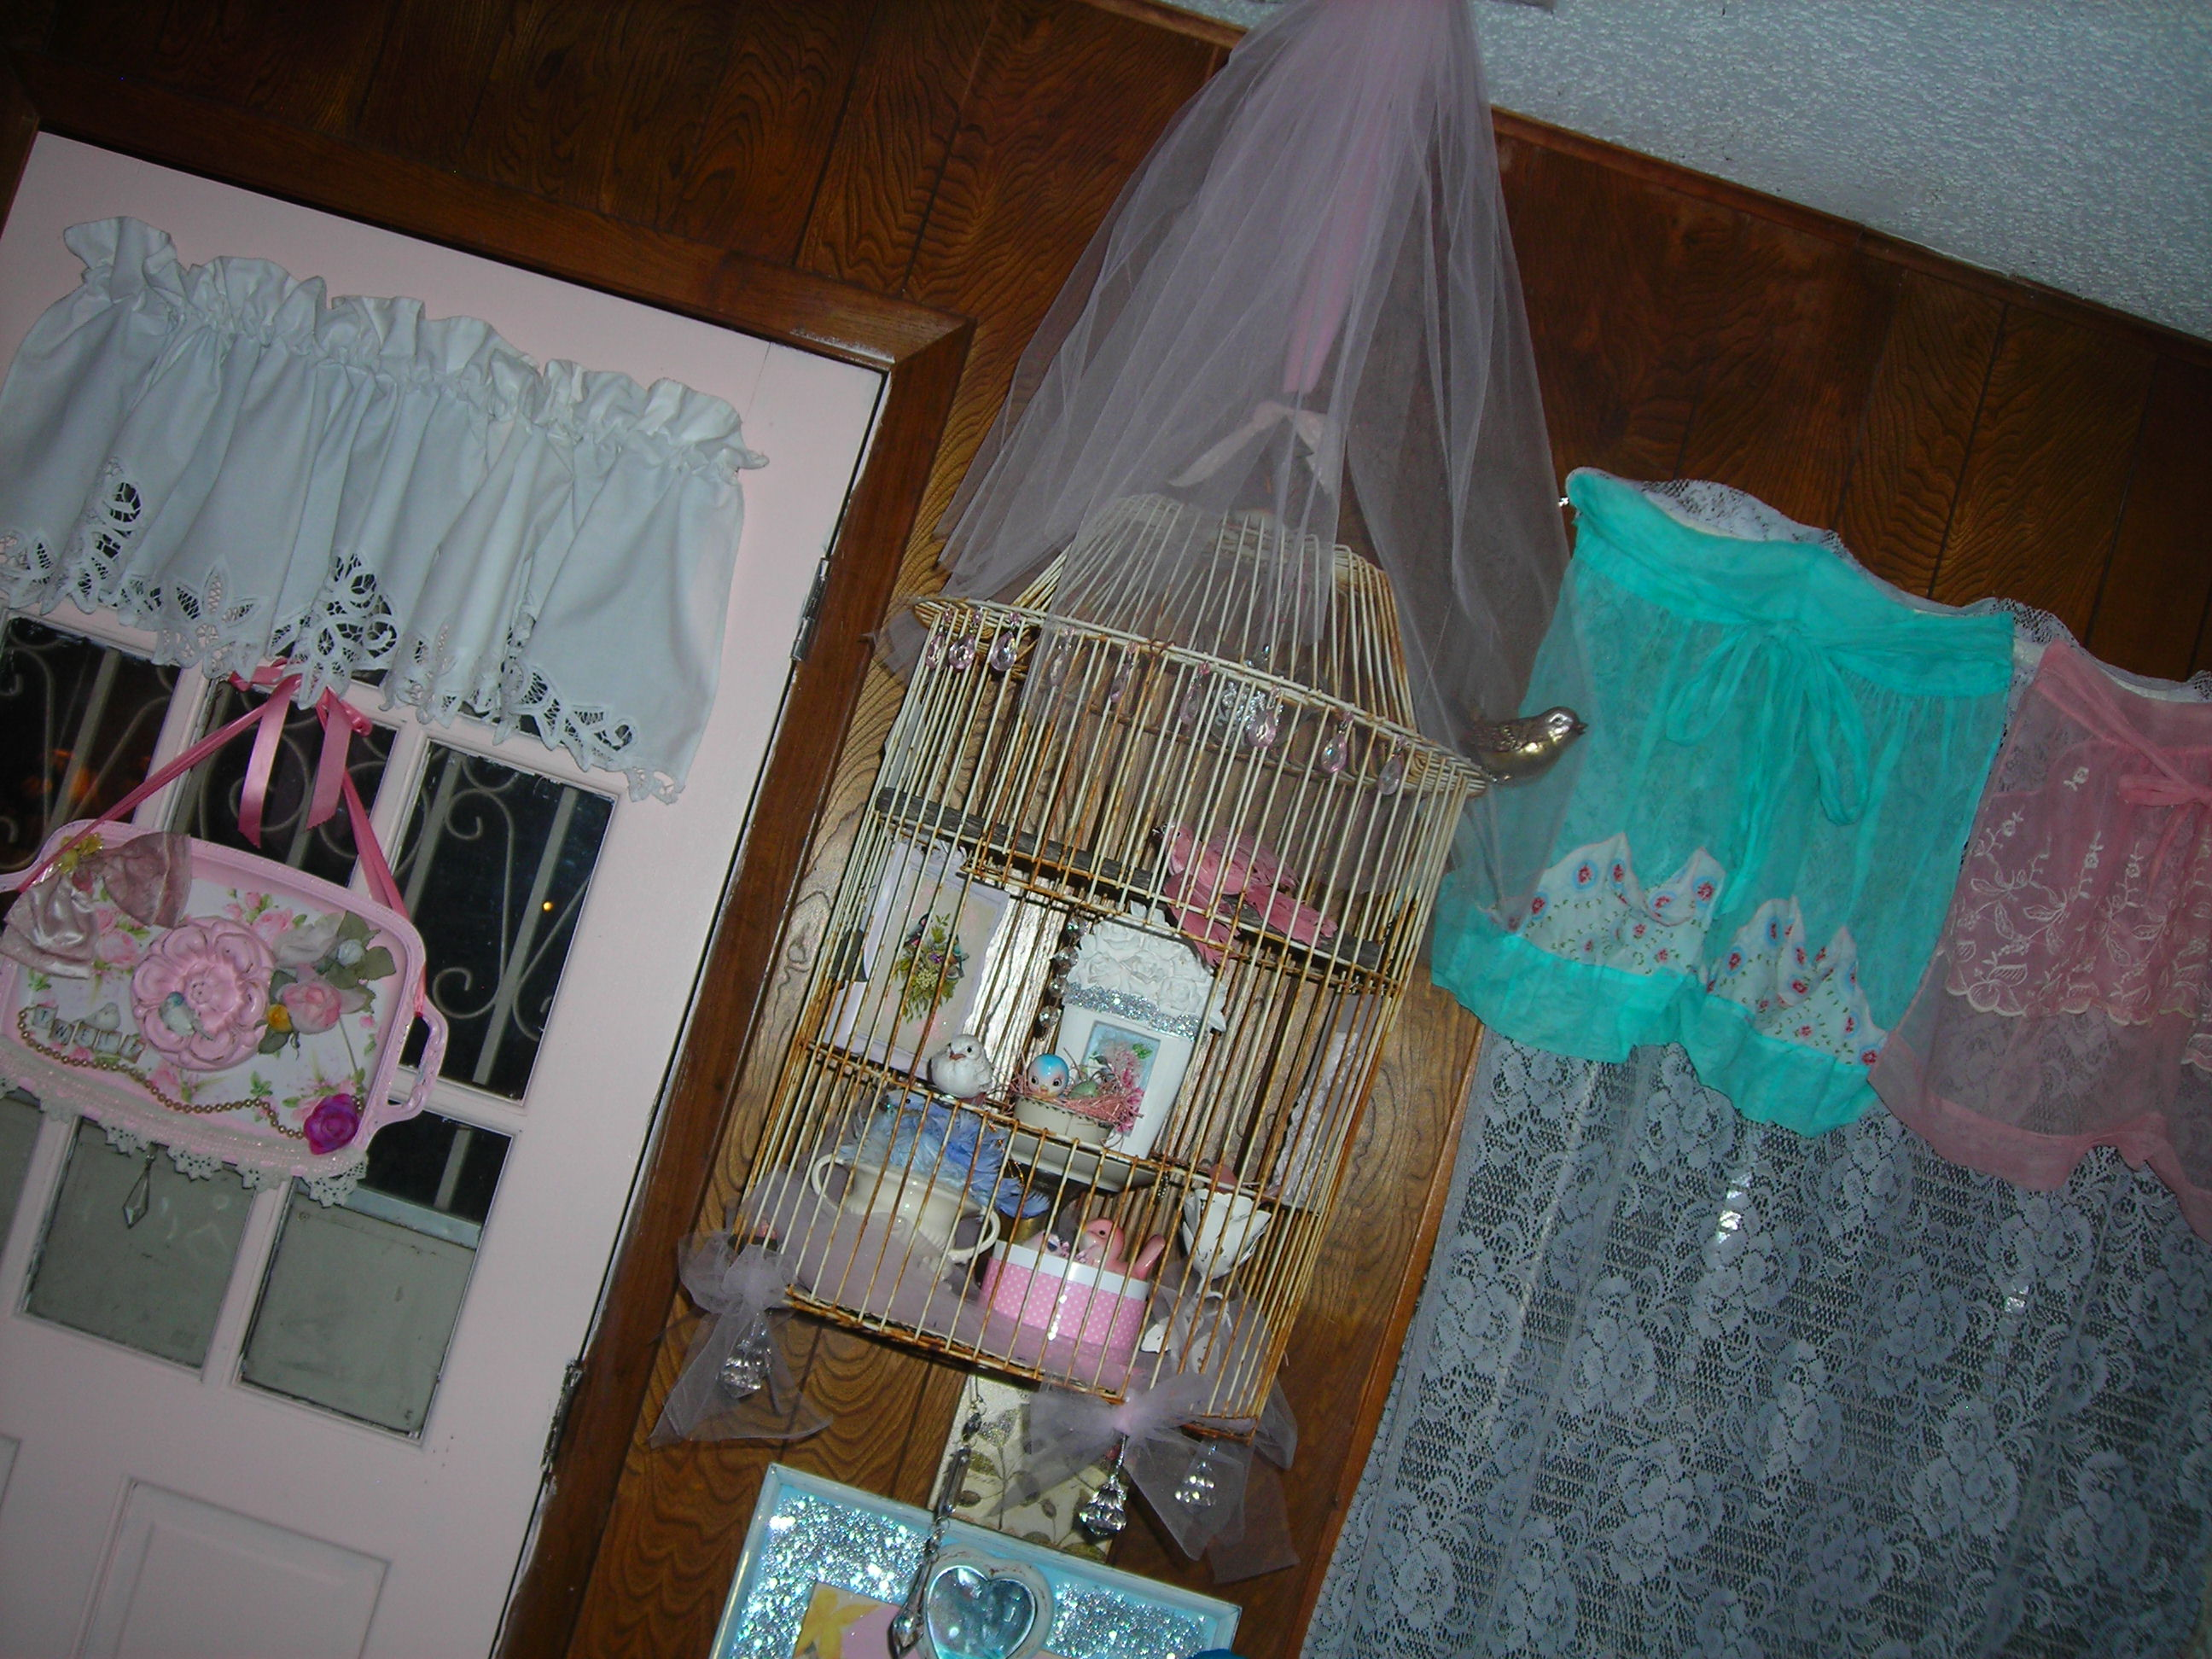 time to check in on my 'birdies'! i must be insane to have a an old rusty birdcage IN my house, filled with fake birds ... but at least they don't poop or stink or make noise.